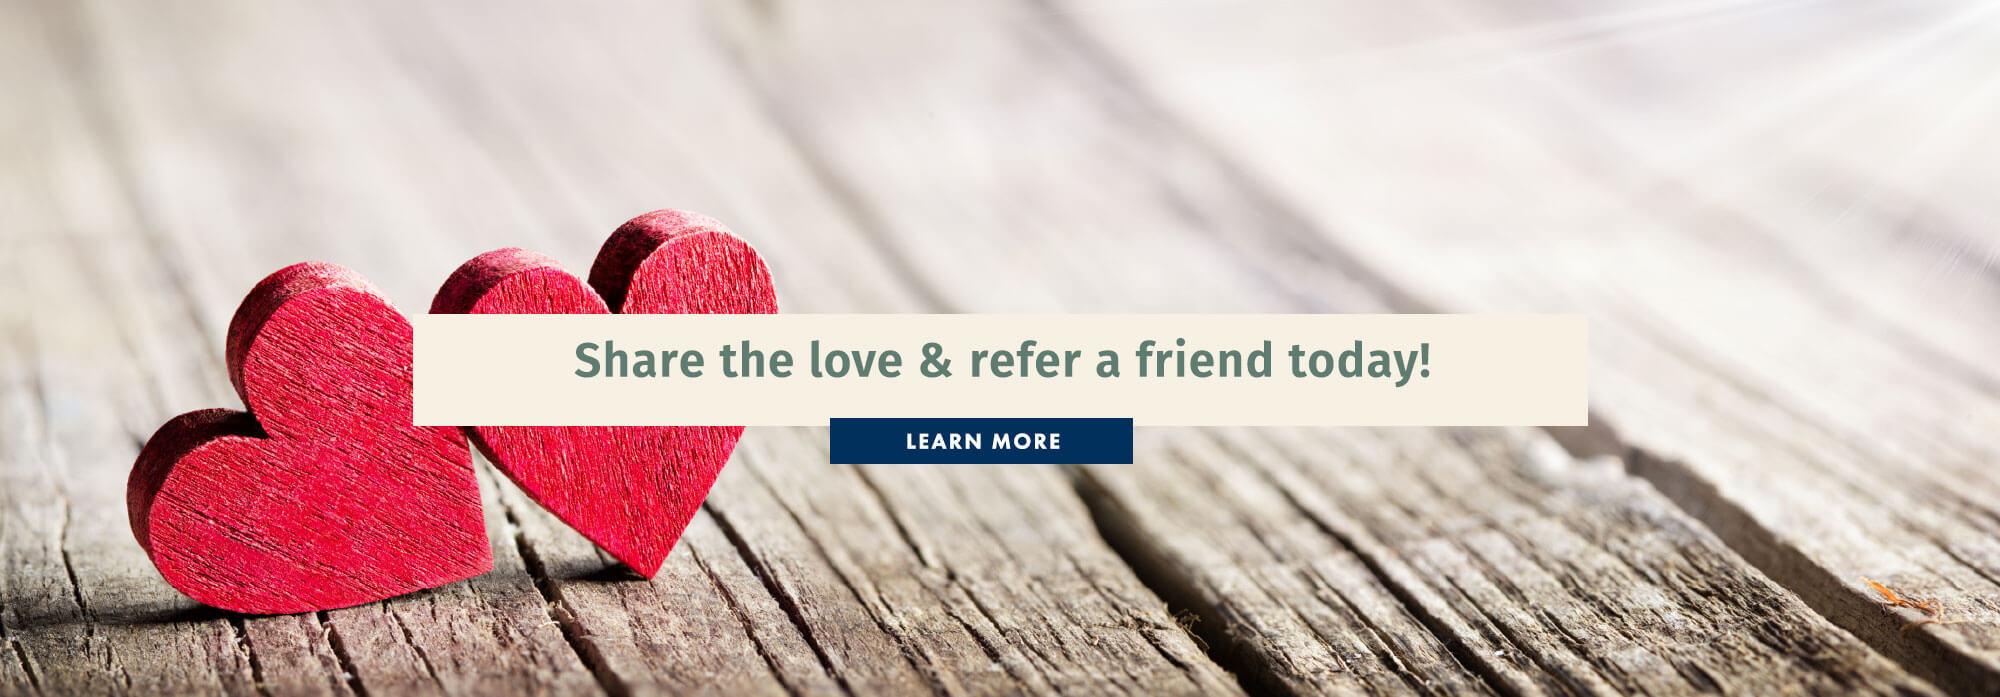 Share the love & refer a friend today! Learn More